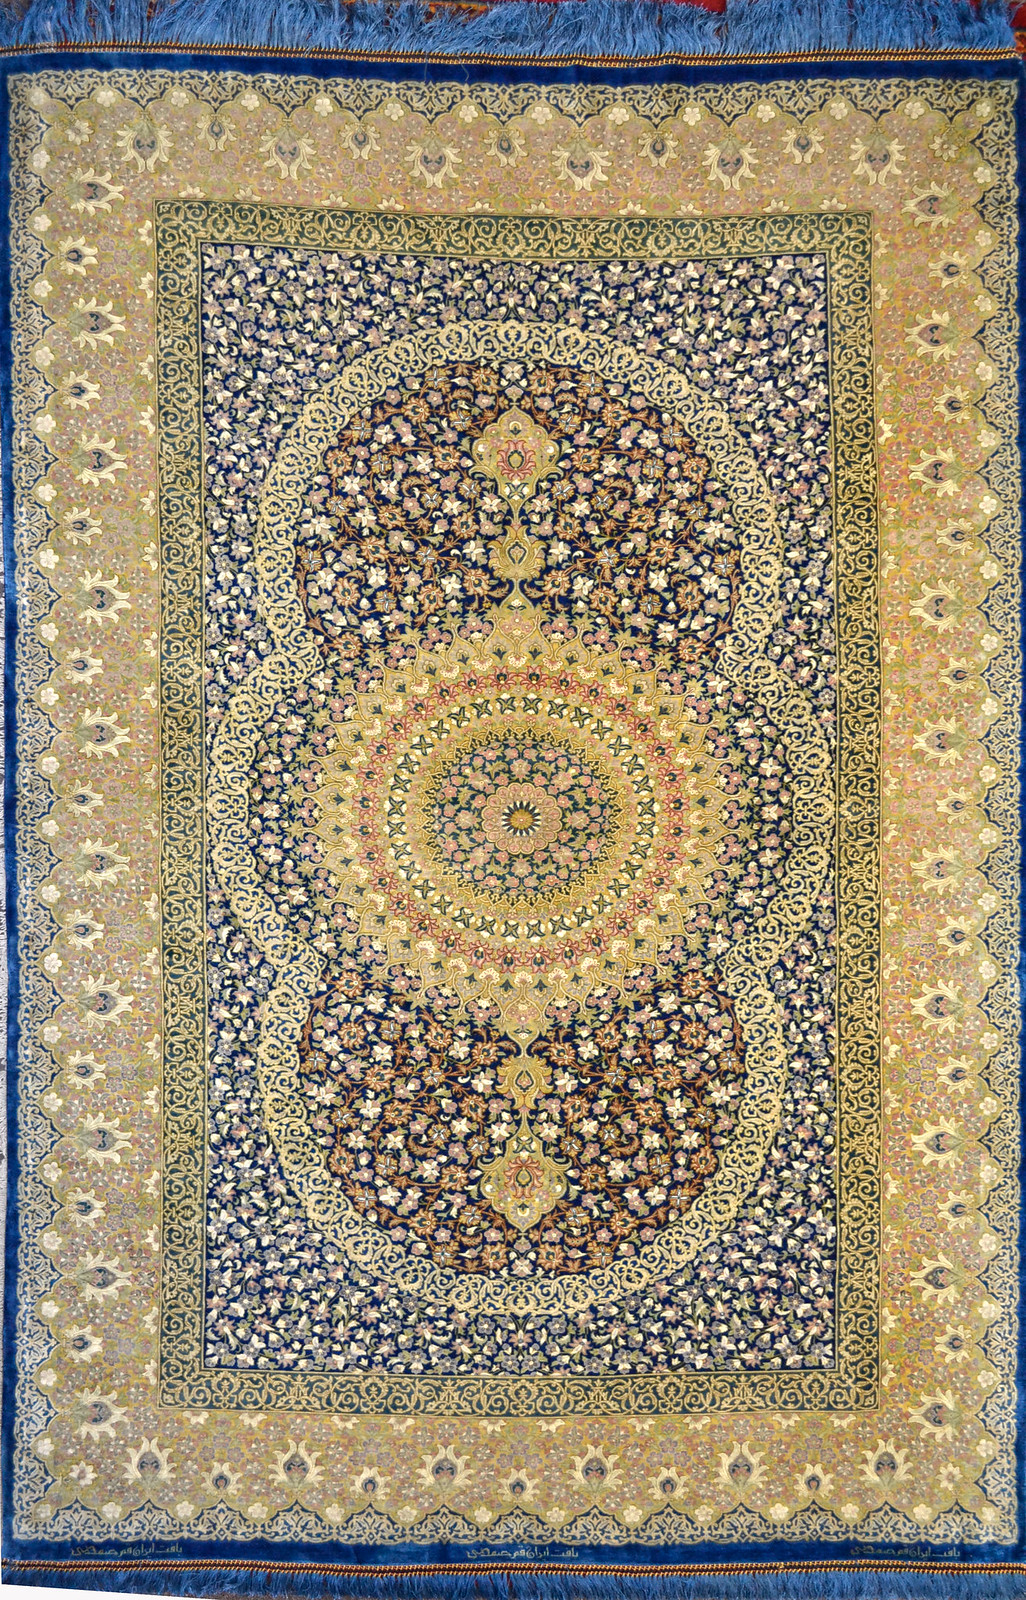 Master Piece 1000 KPSI Qum Pure Silk Persian Area Rug 5x7 by Samadi (2)